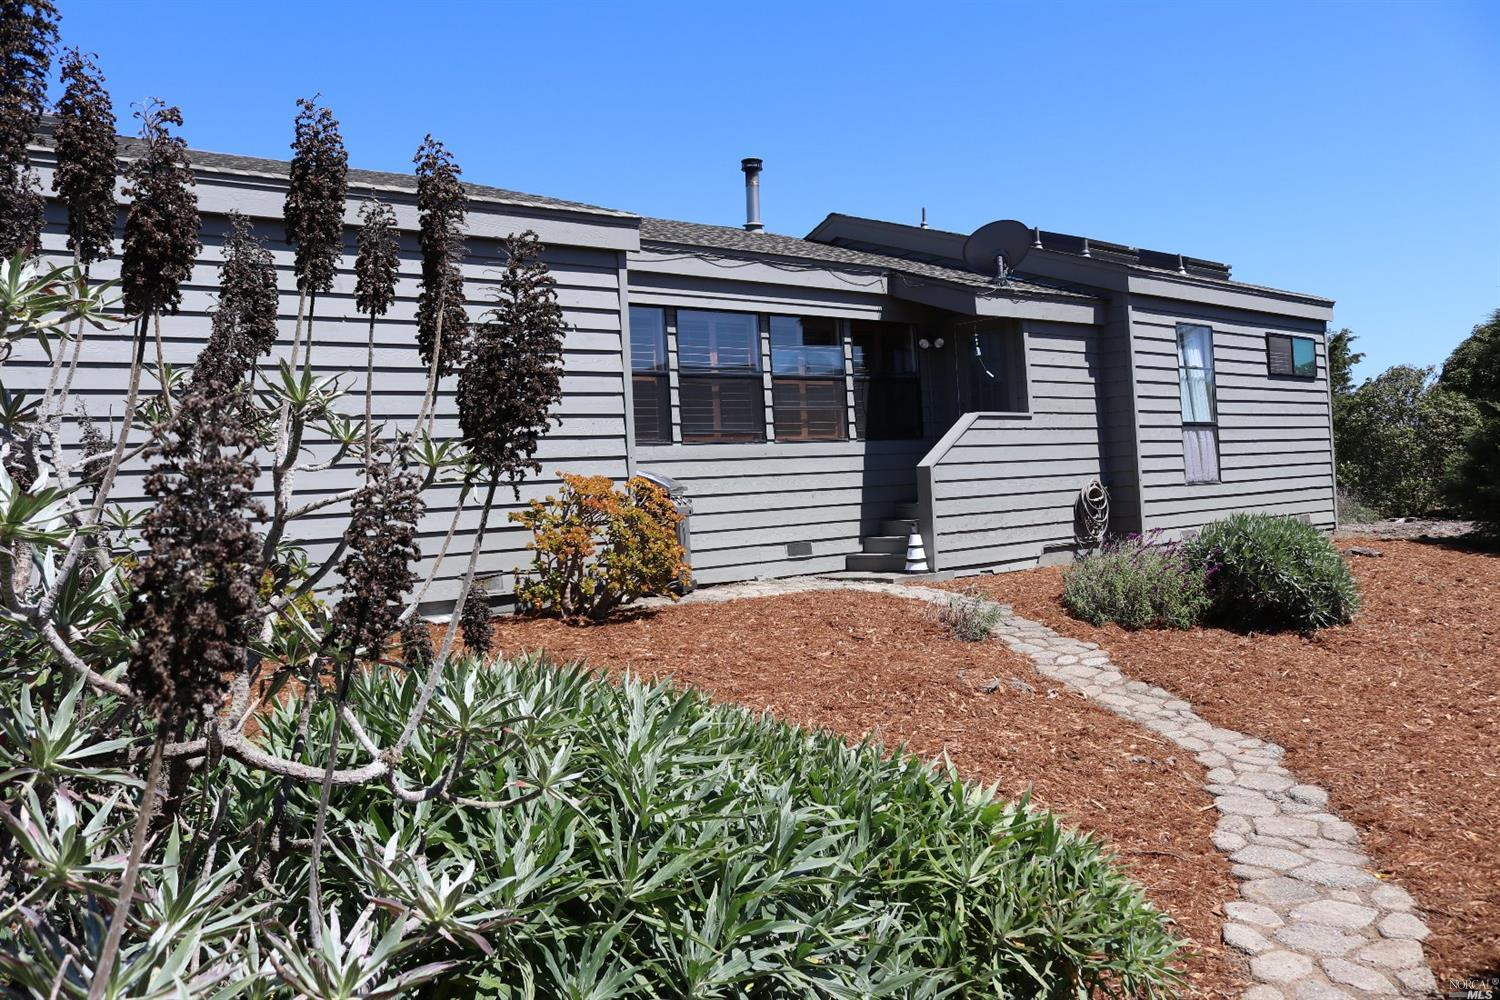 1930 Sea way Bodega Bay, CA 94923 - MLS #: 21716240